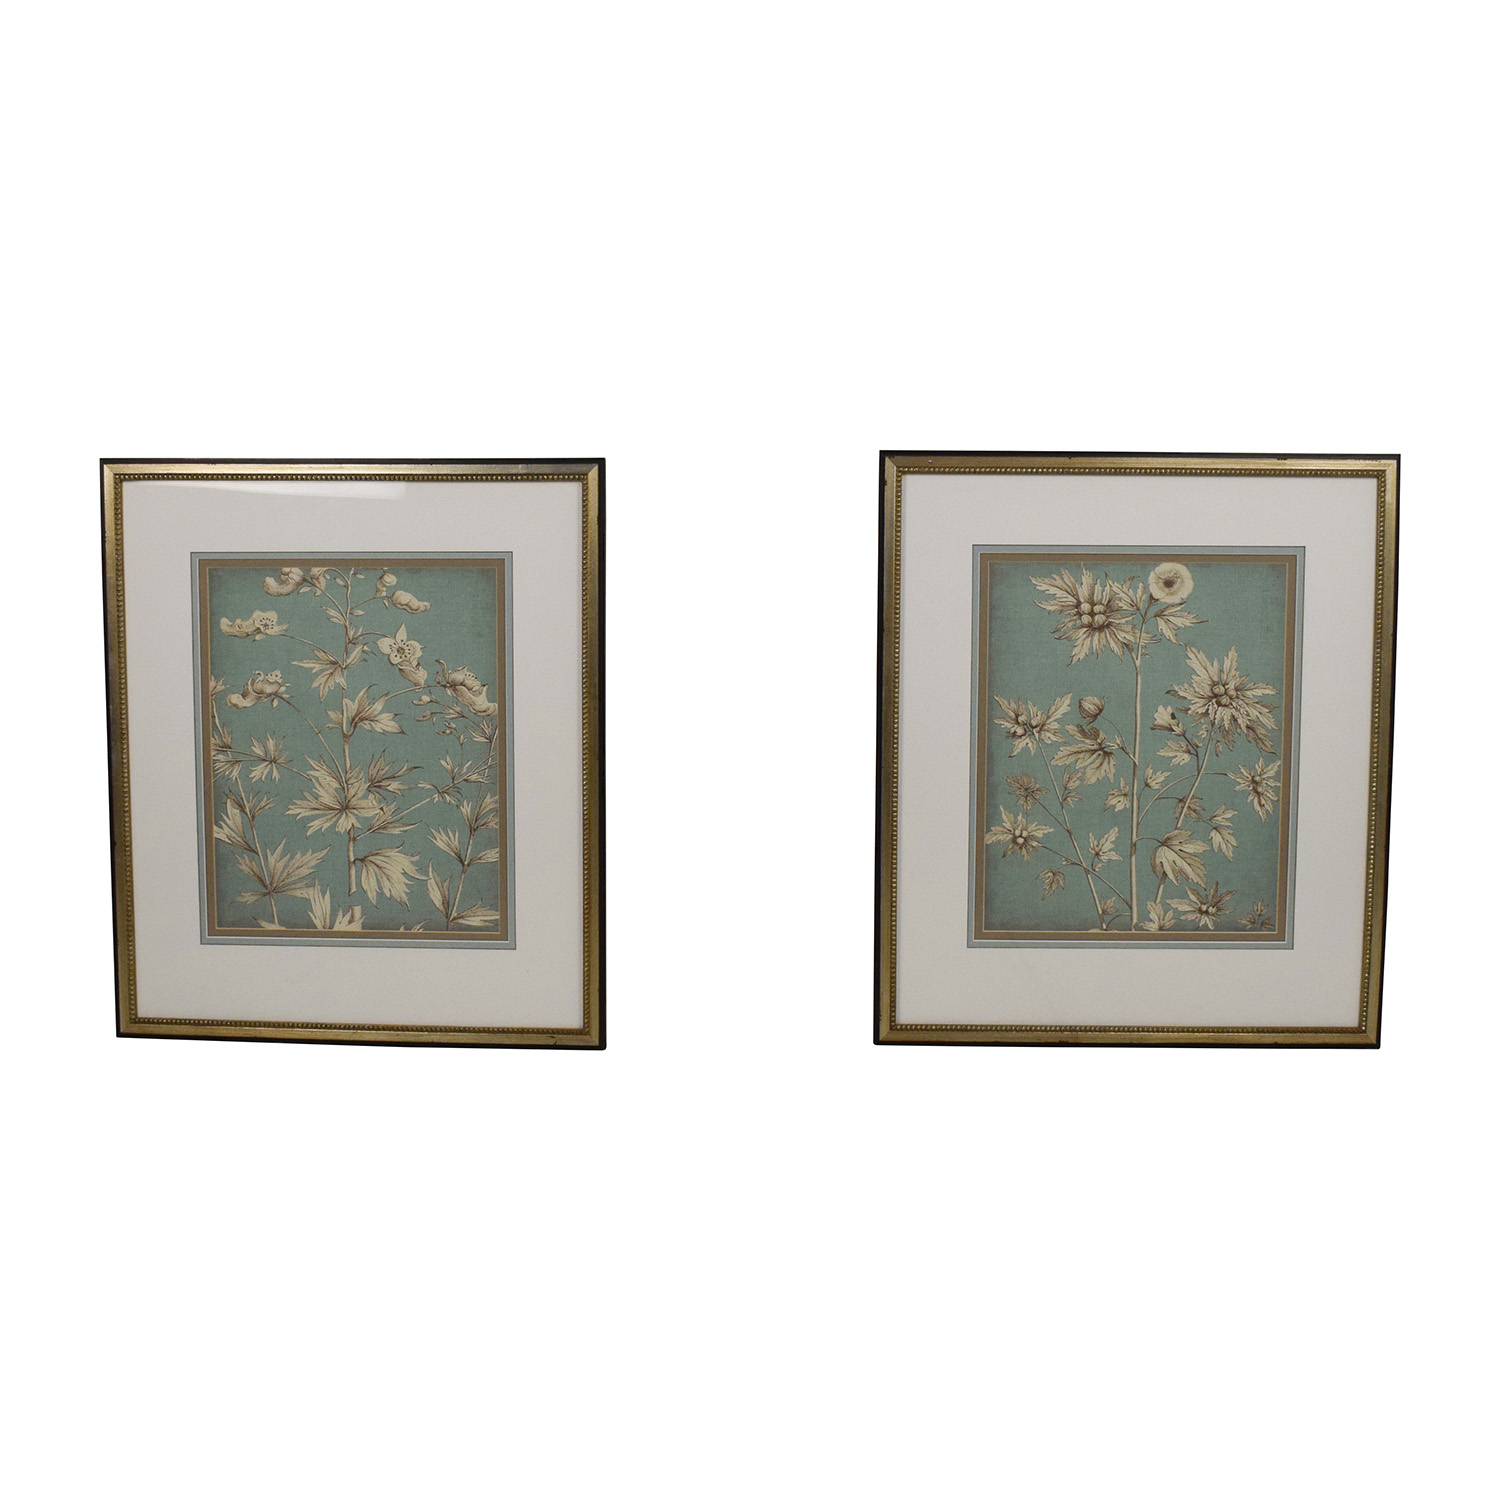 shop Ethan Allen Ethan Allen Pair of Decorative Floral Pictures online